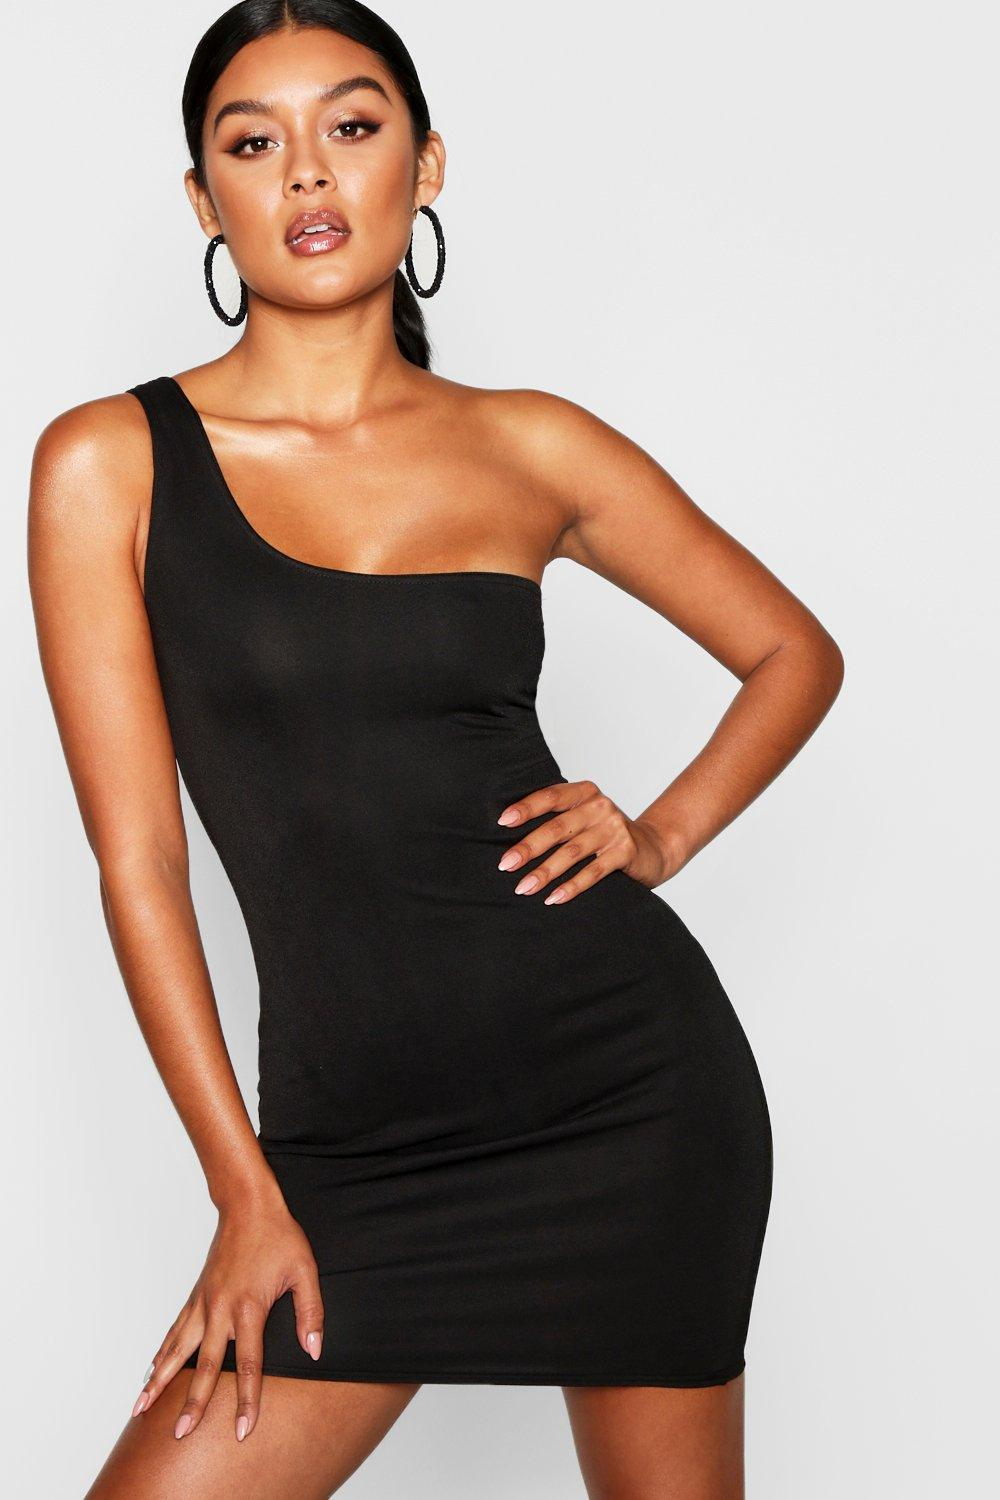 a871ad3b2 Womens Black Thick One Shoulder Strap Bodycon Dress. Hover to zoom